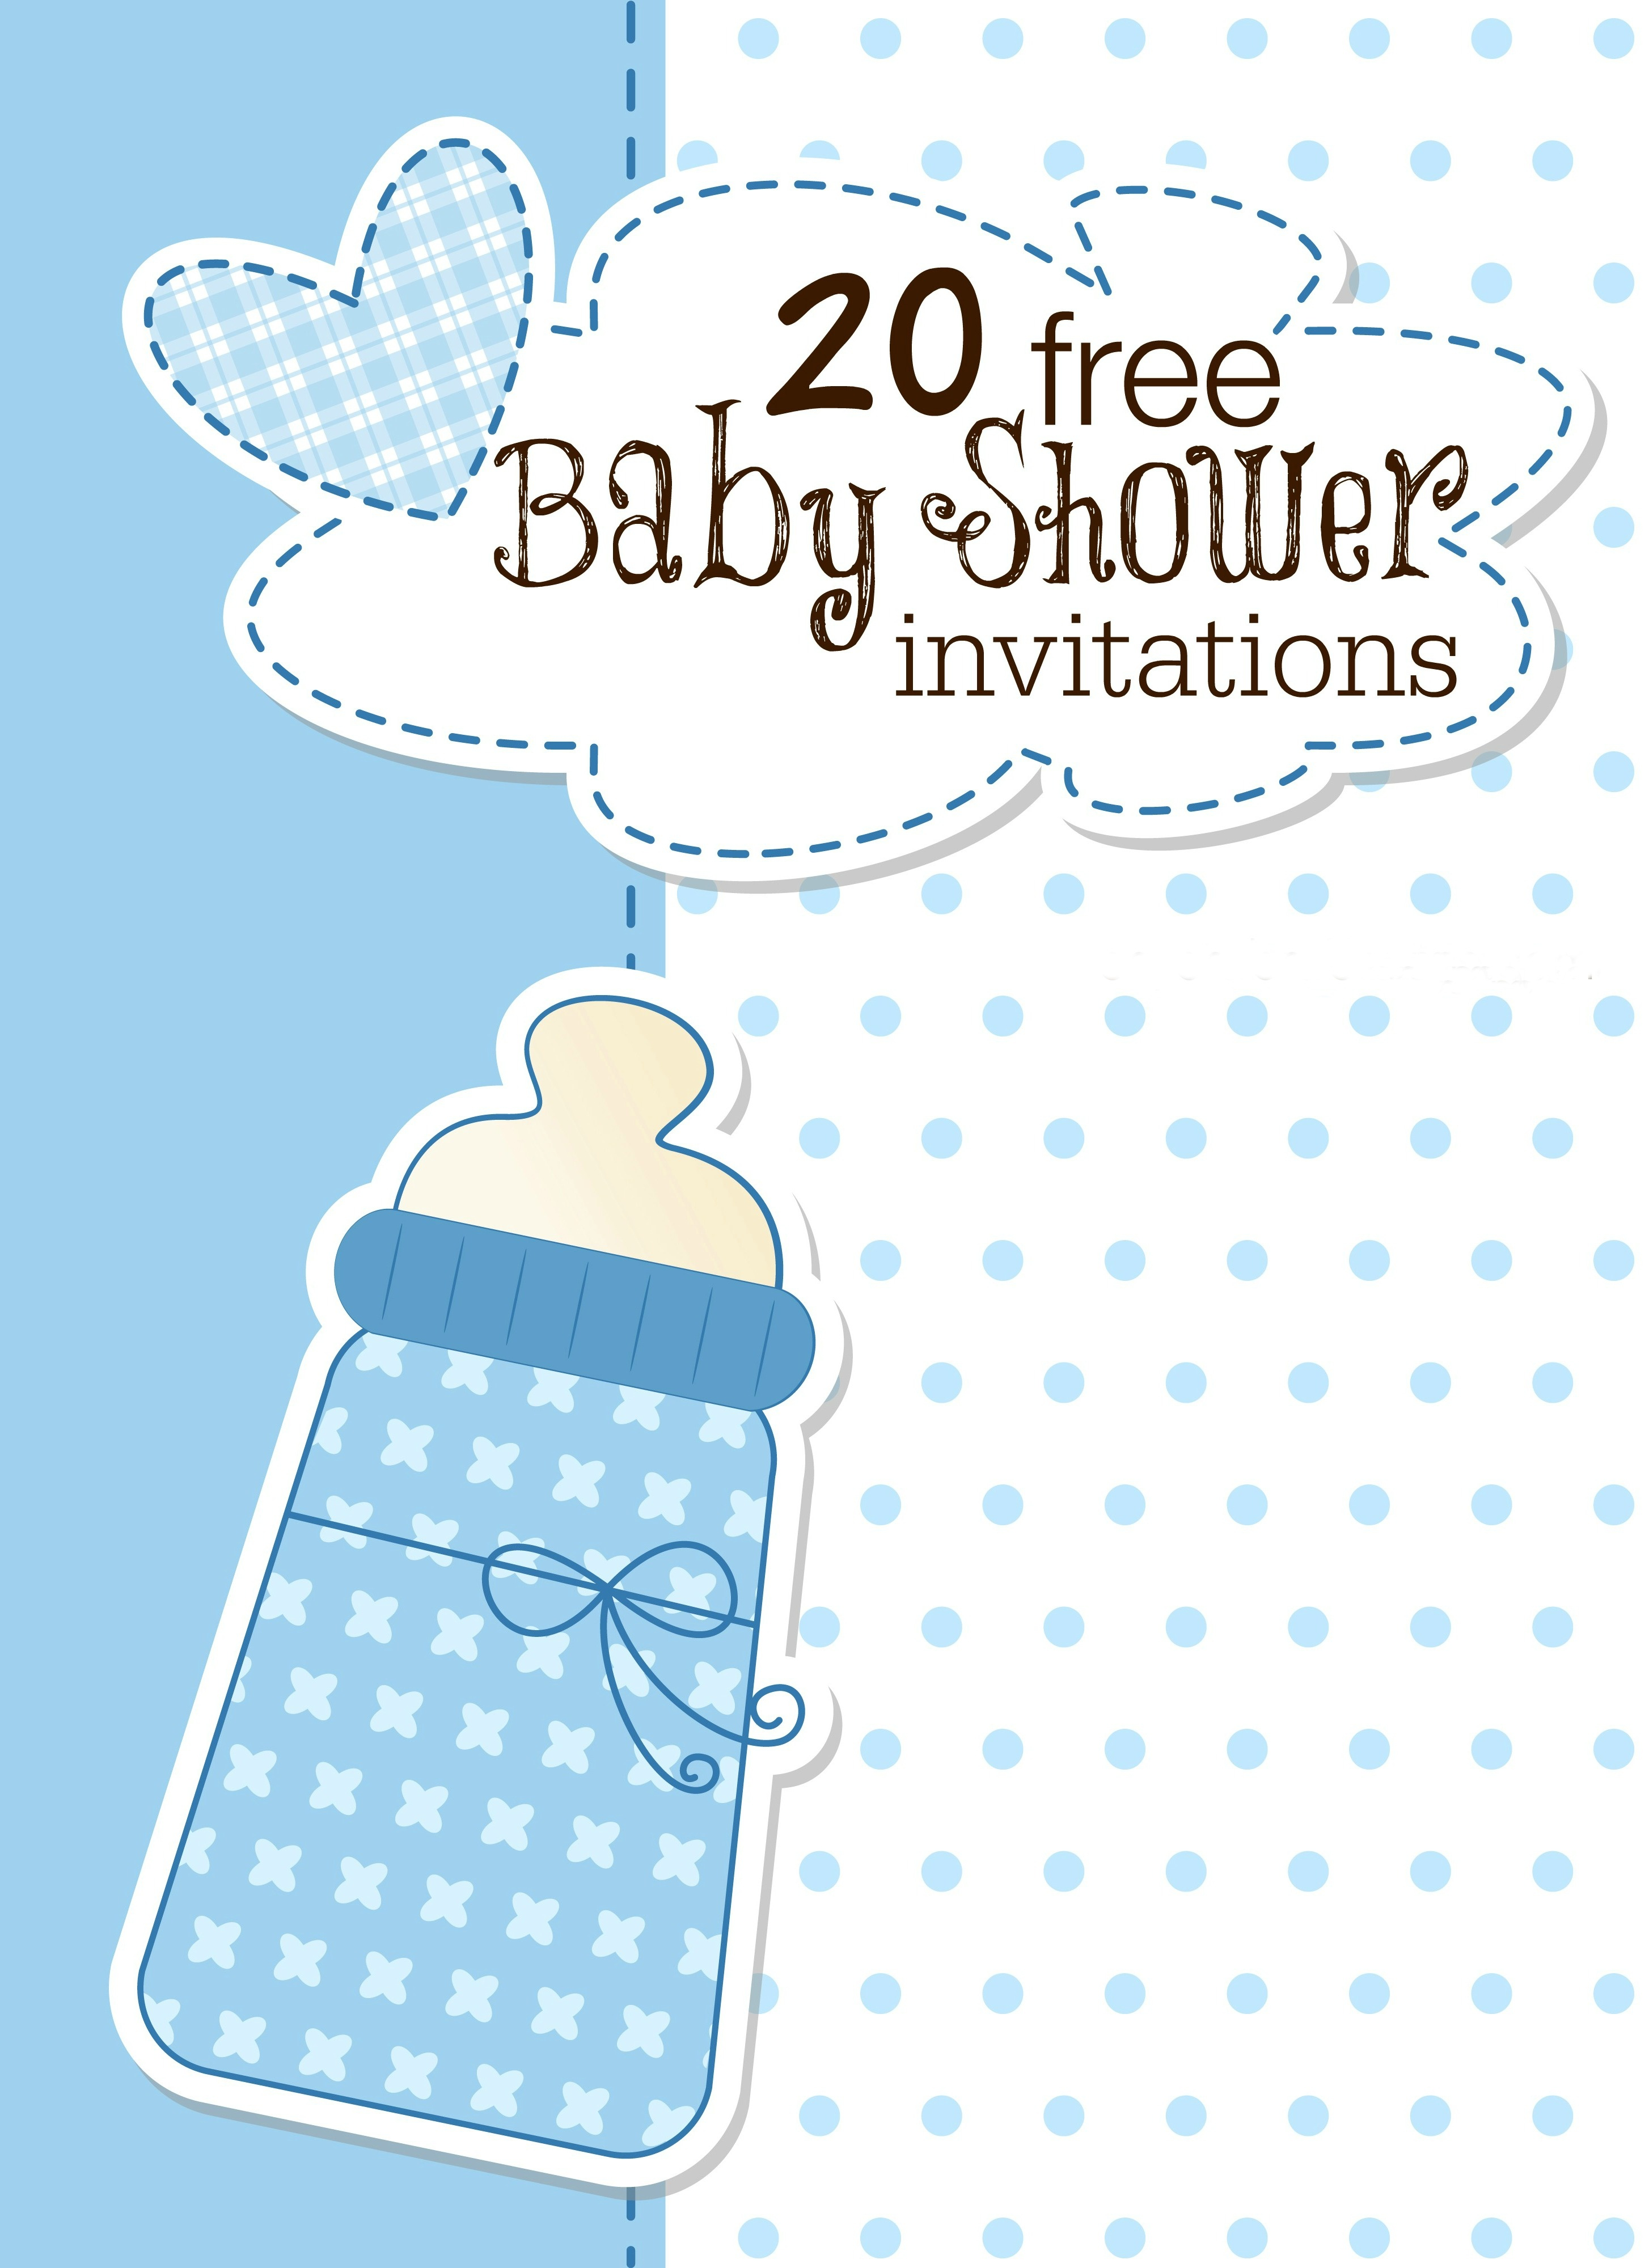 Printable Baby Shower Invitations - Free Printable Elephant Baby Shower Invitations